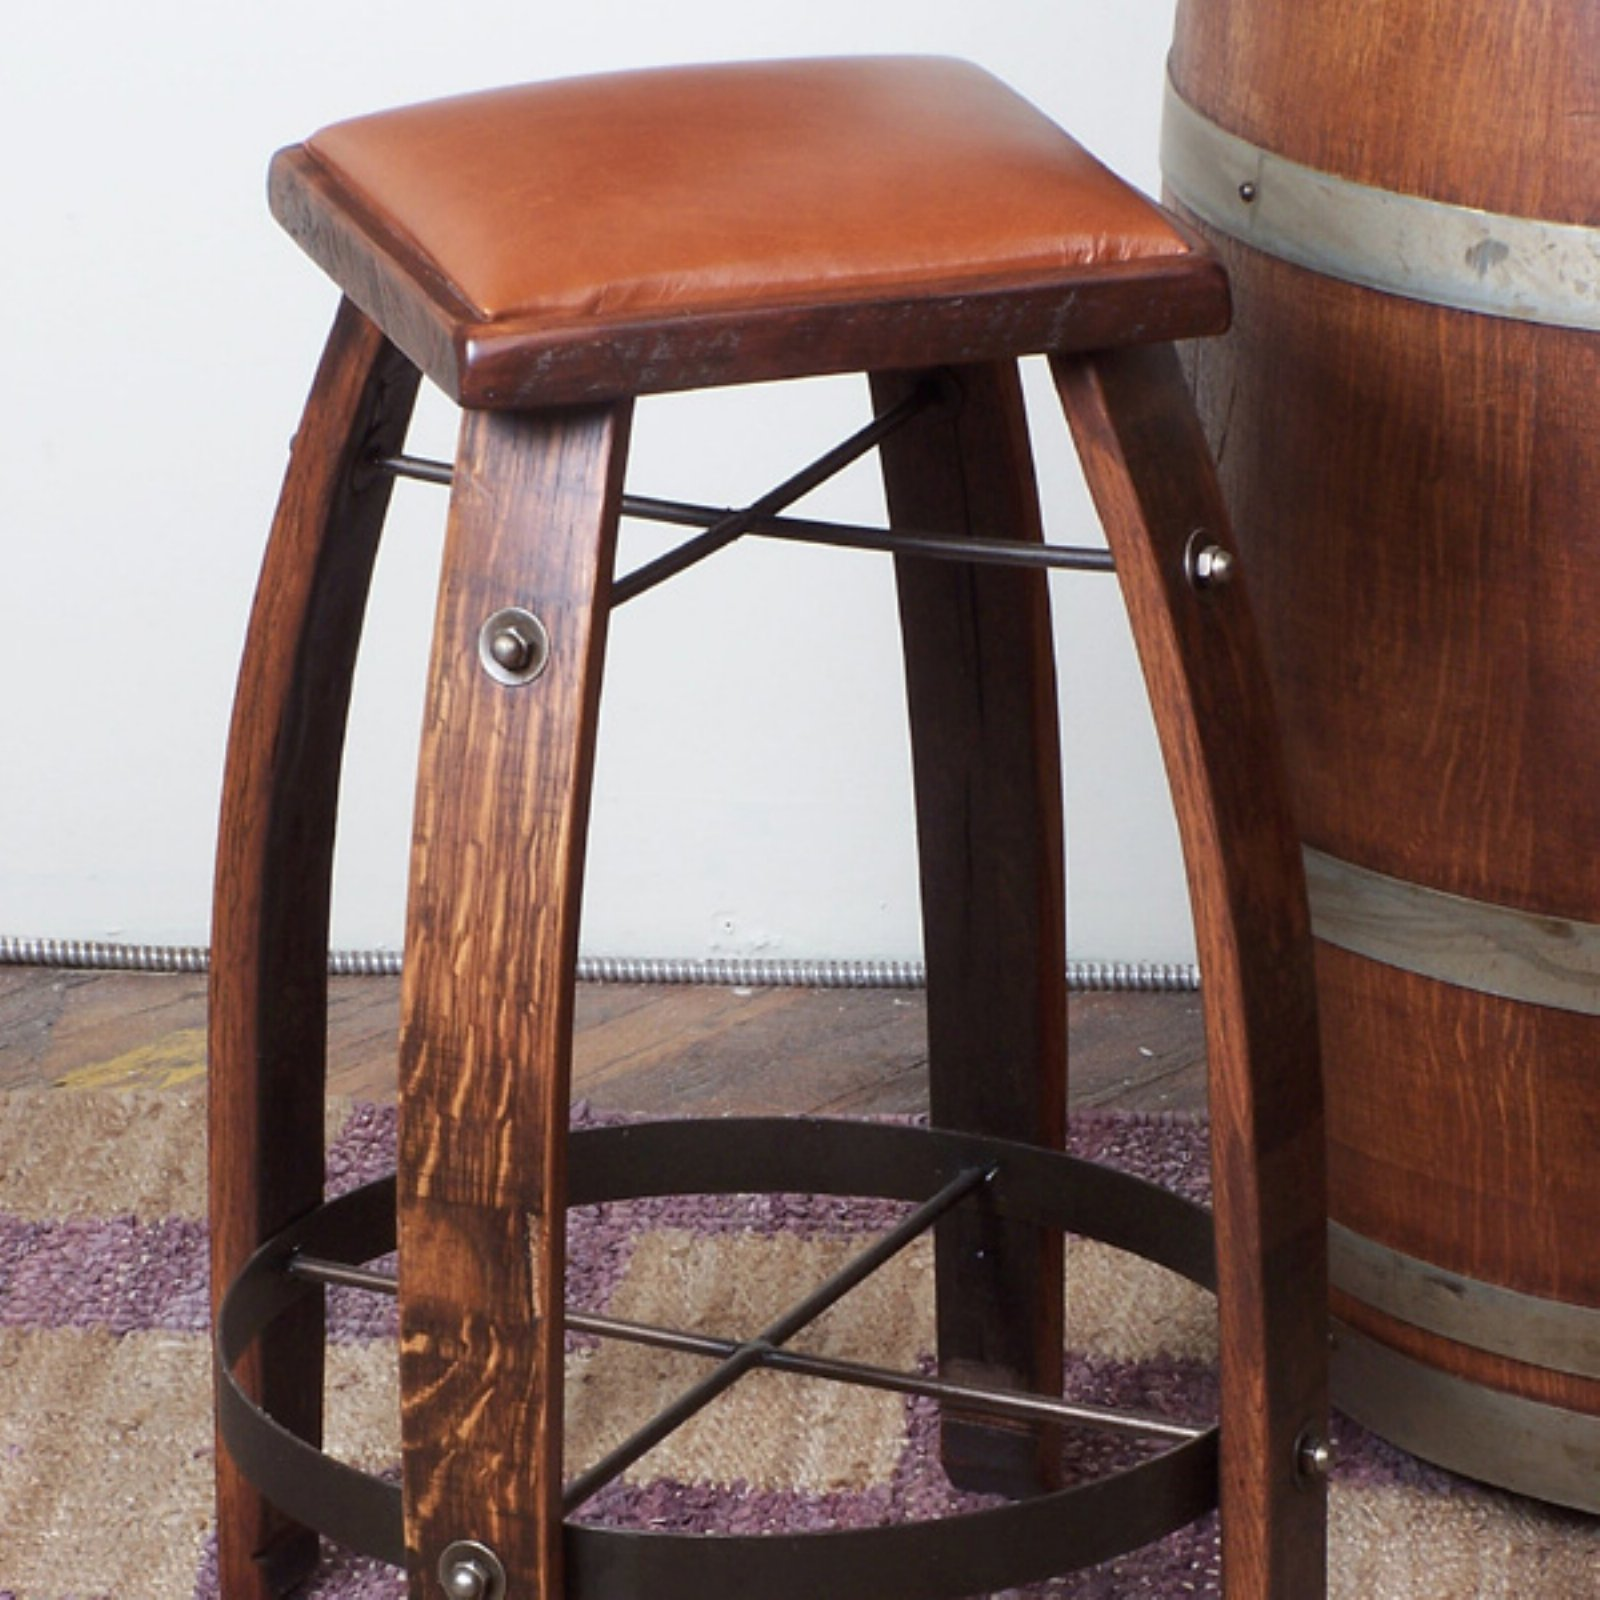 2 Day Designs Reclaimed 24 in. Stave Counter Stool with Leather Seat